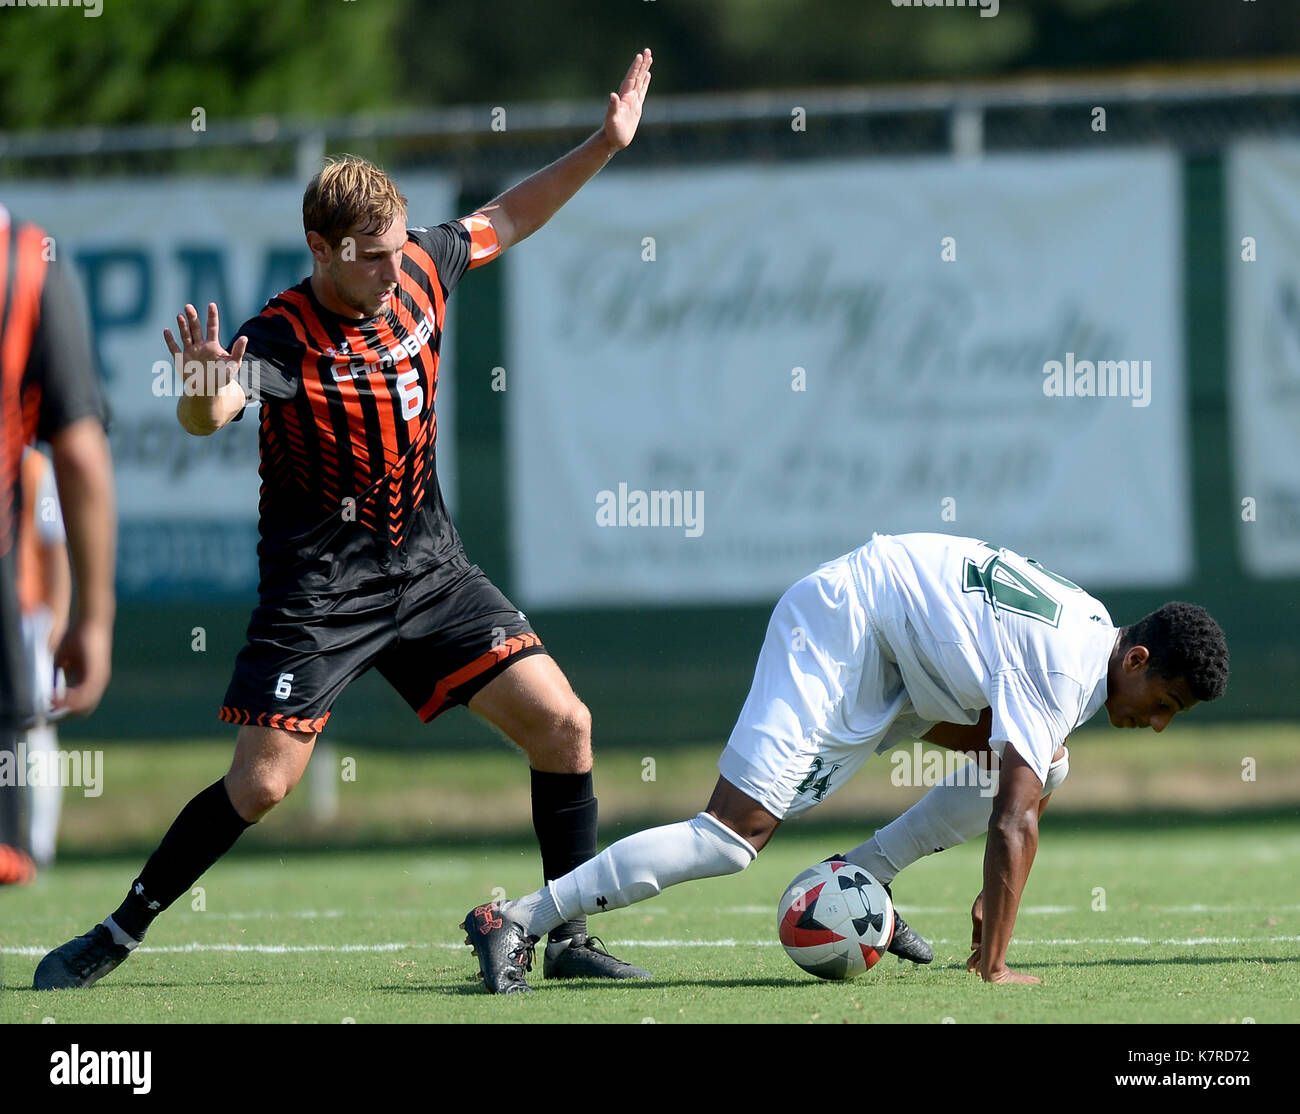 Williamsburg, VA, USA. 16th Sep, 2017. 20170916 - Campbell midfielder GIDEON BETZ (6) trips William and Mary midfielder JULIAN NGOH (24) in the second half at Martin Family Stadium in Williamsburg, Va. Credit: Chuck Myers/ZUMA Wire/Alamy Live News - Stock Image